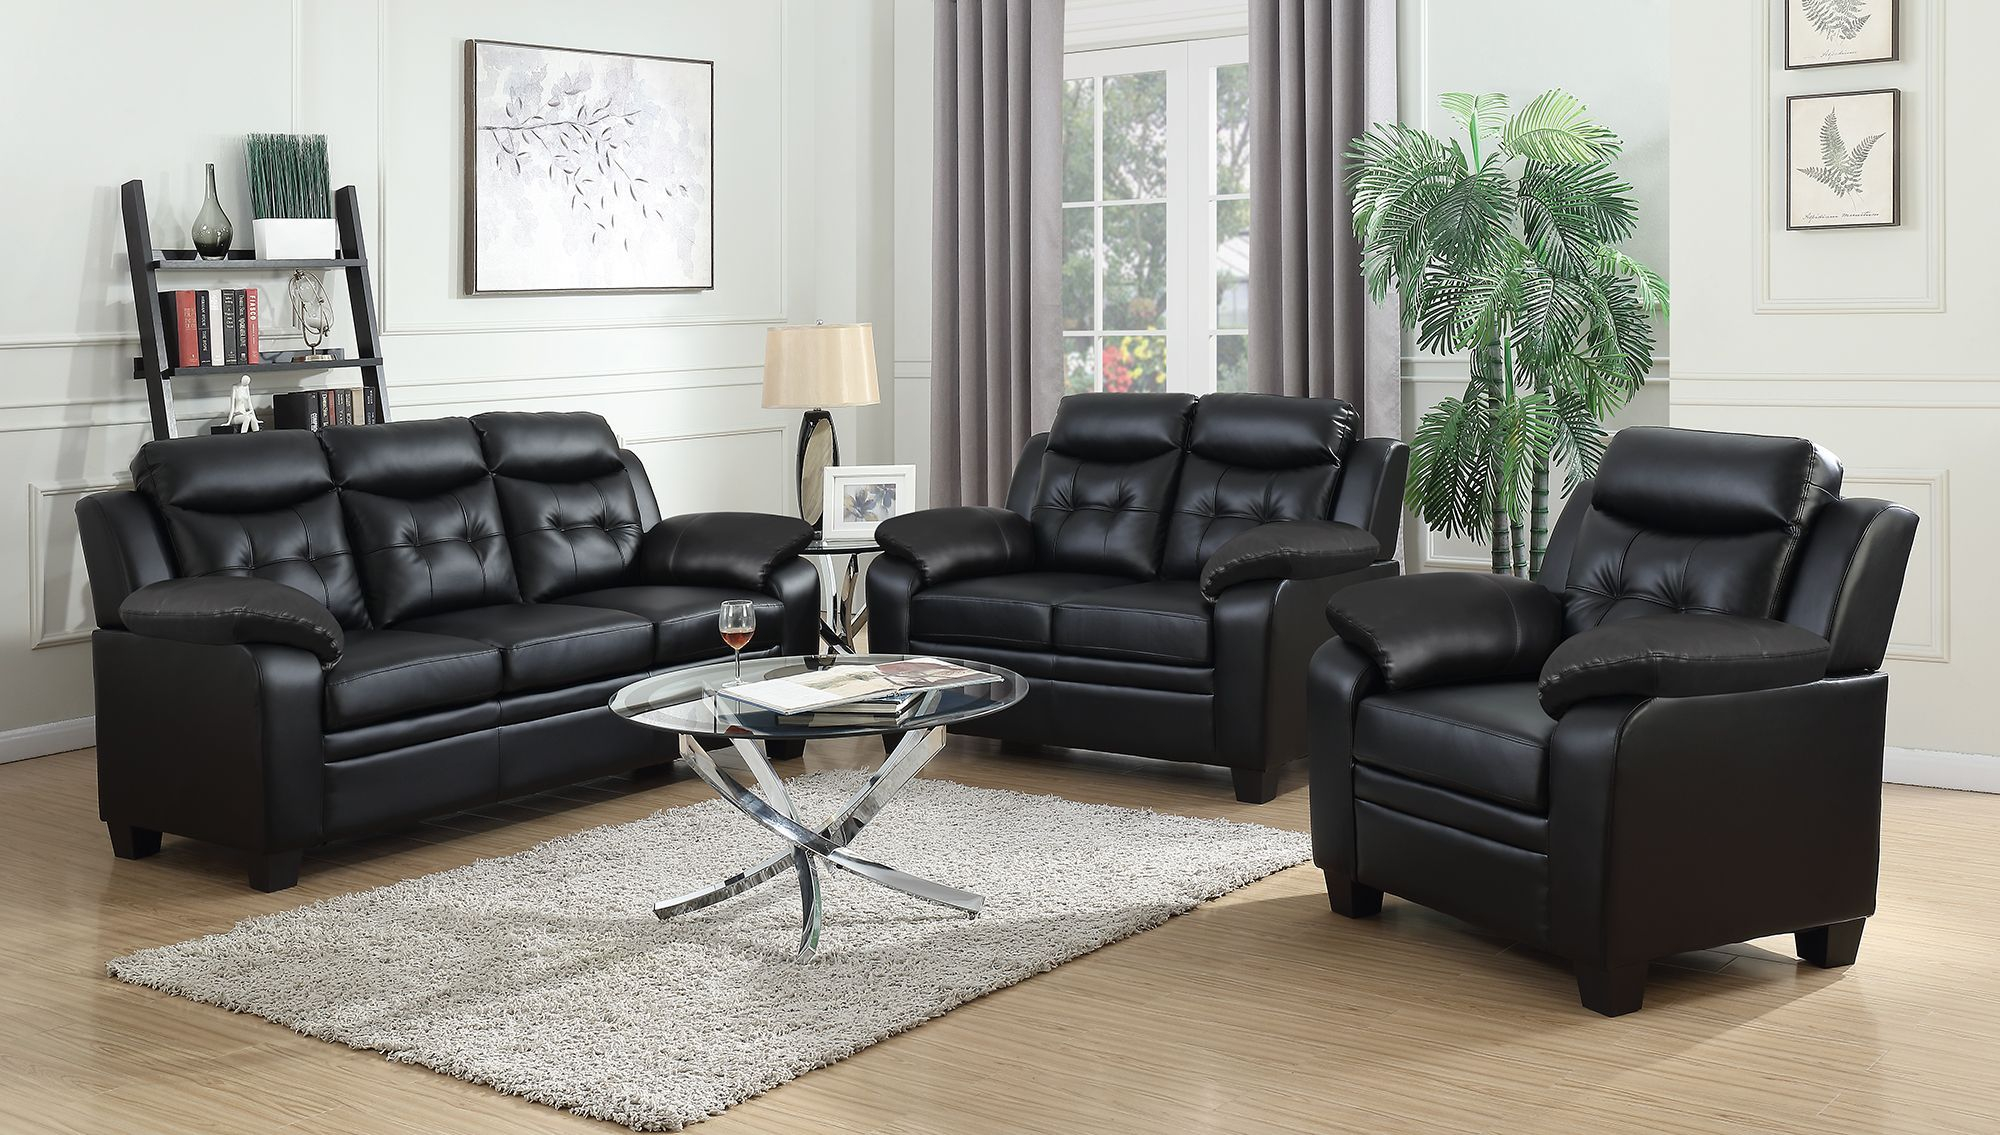 Finley Black Living Room Set within 13 Clever Tricks of How to Improve Black Living Room Sets